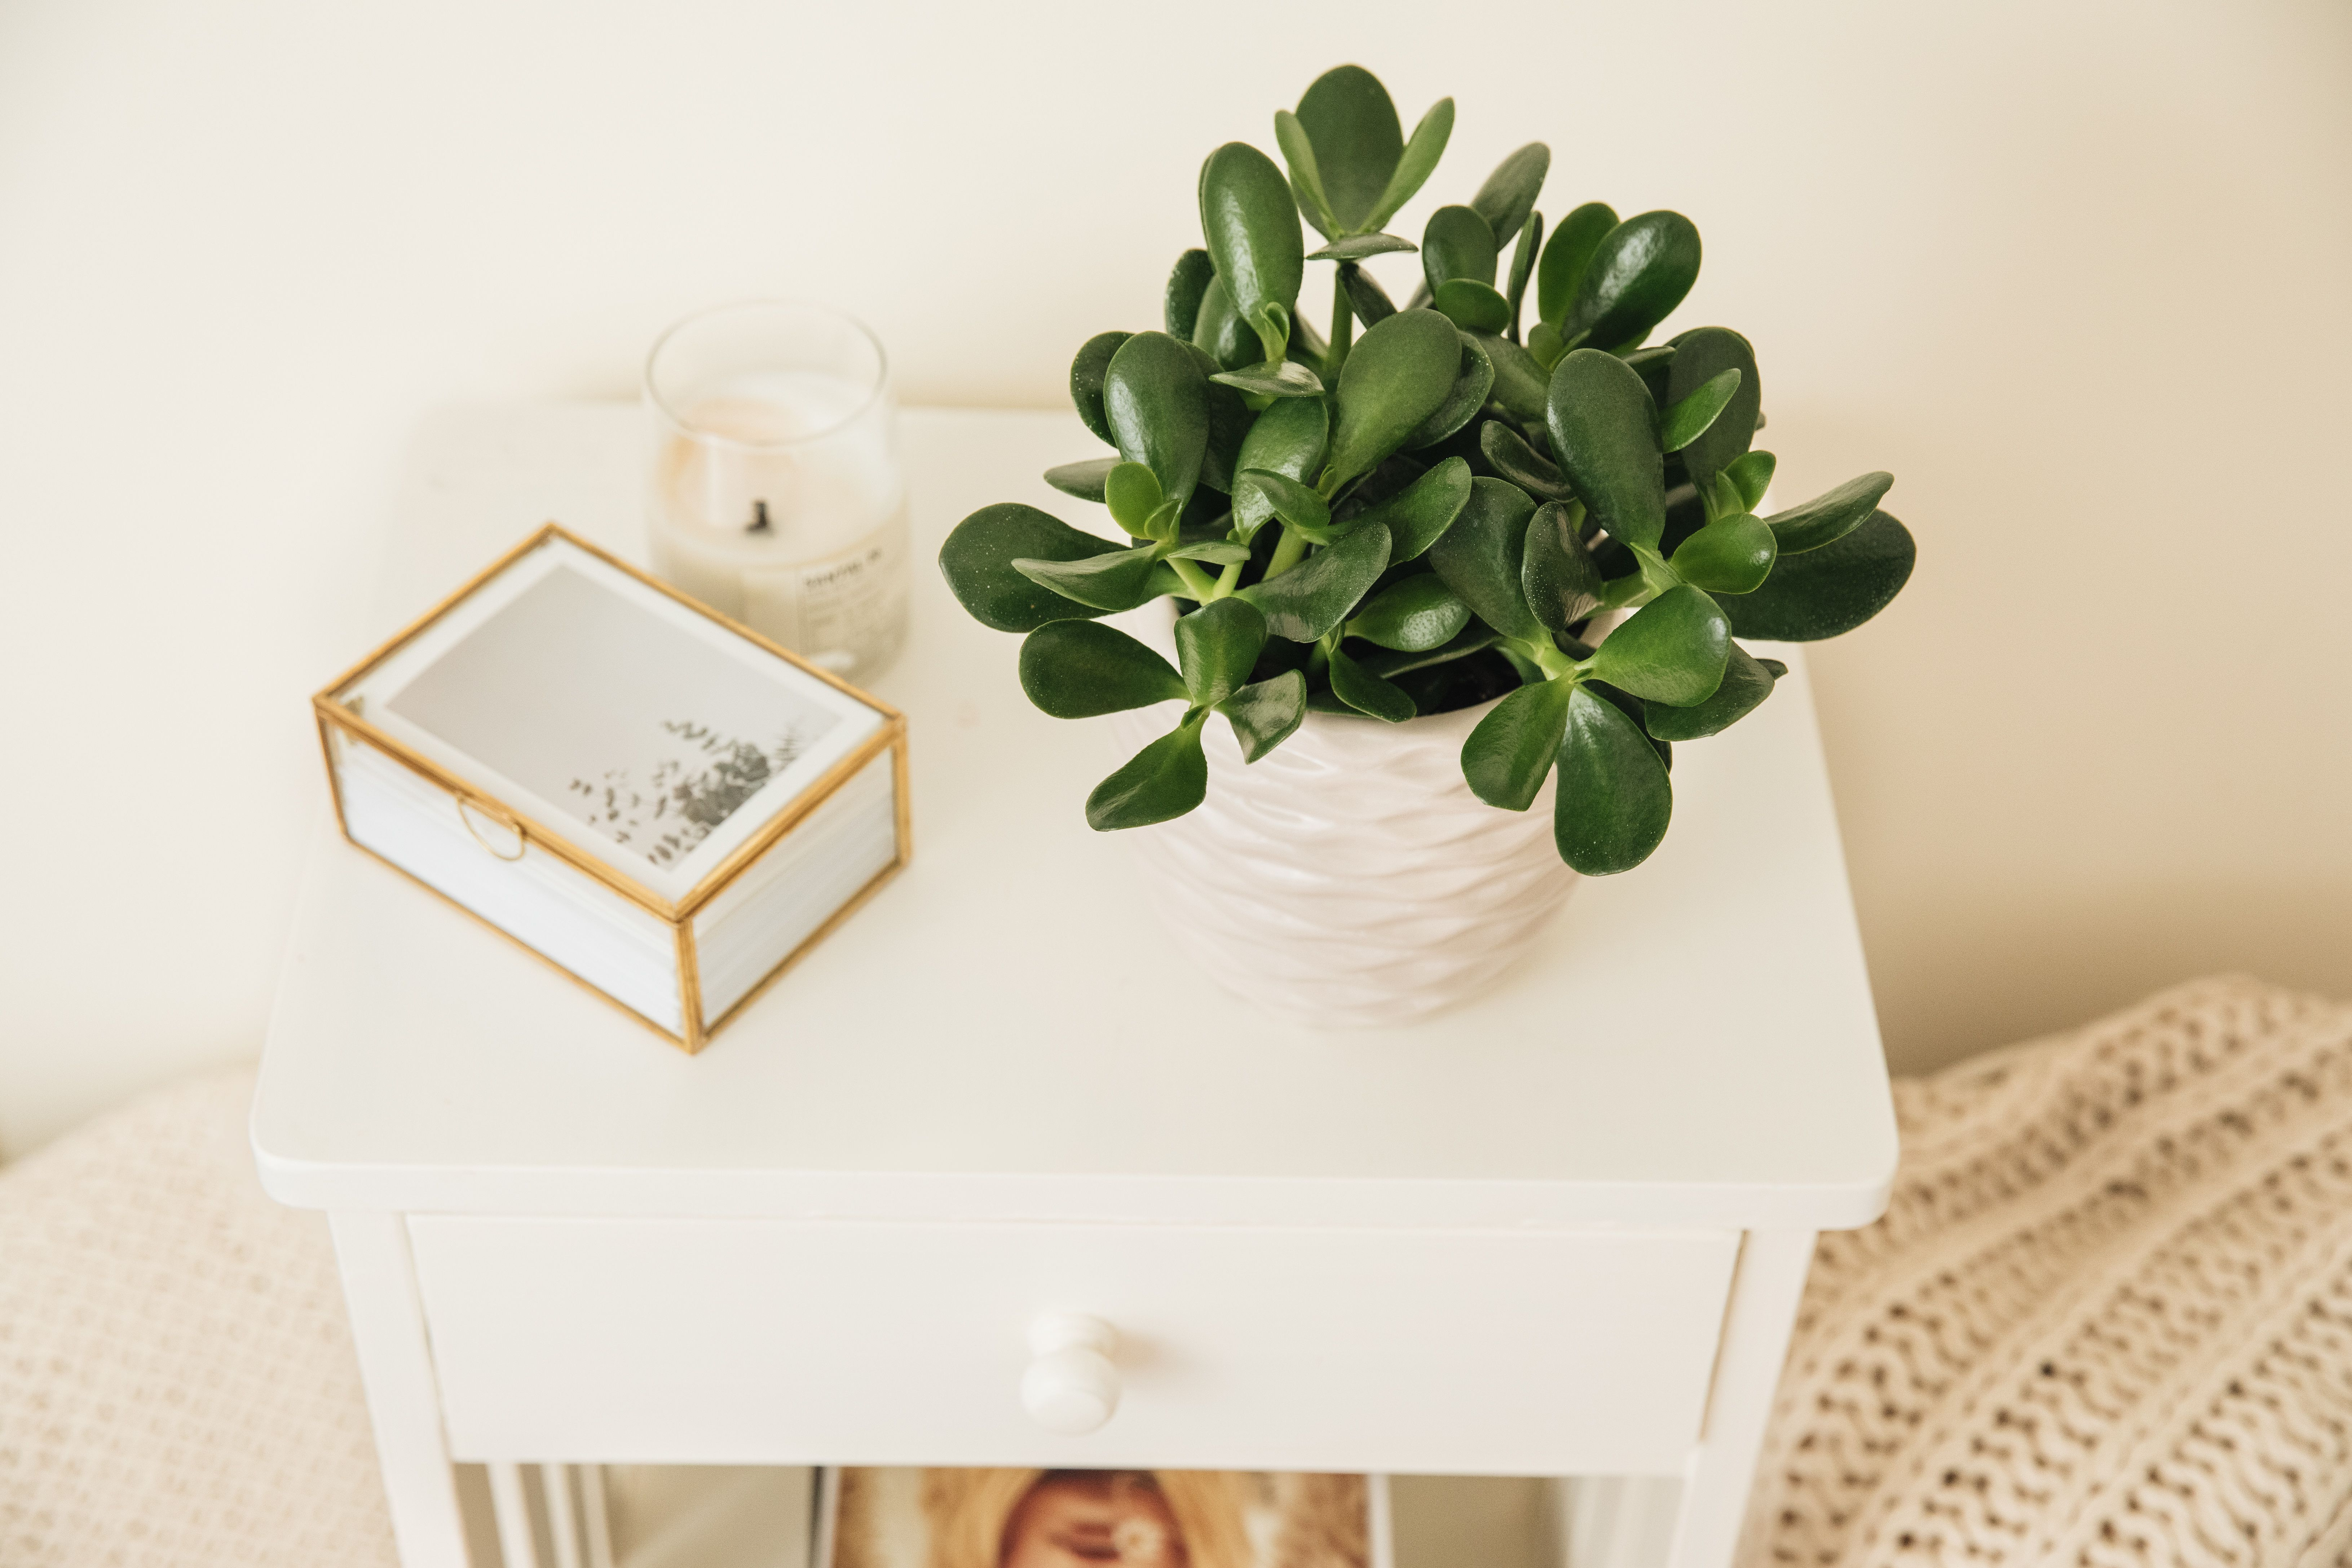 How To Grow And Care For Jade Plants